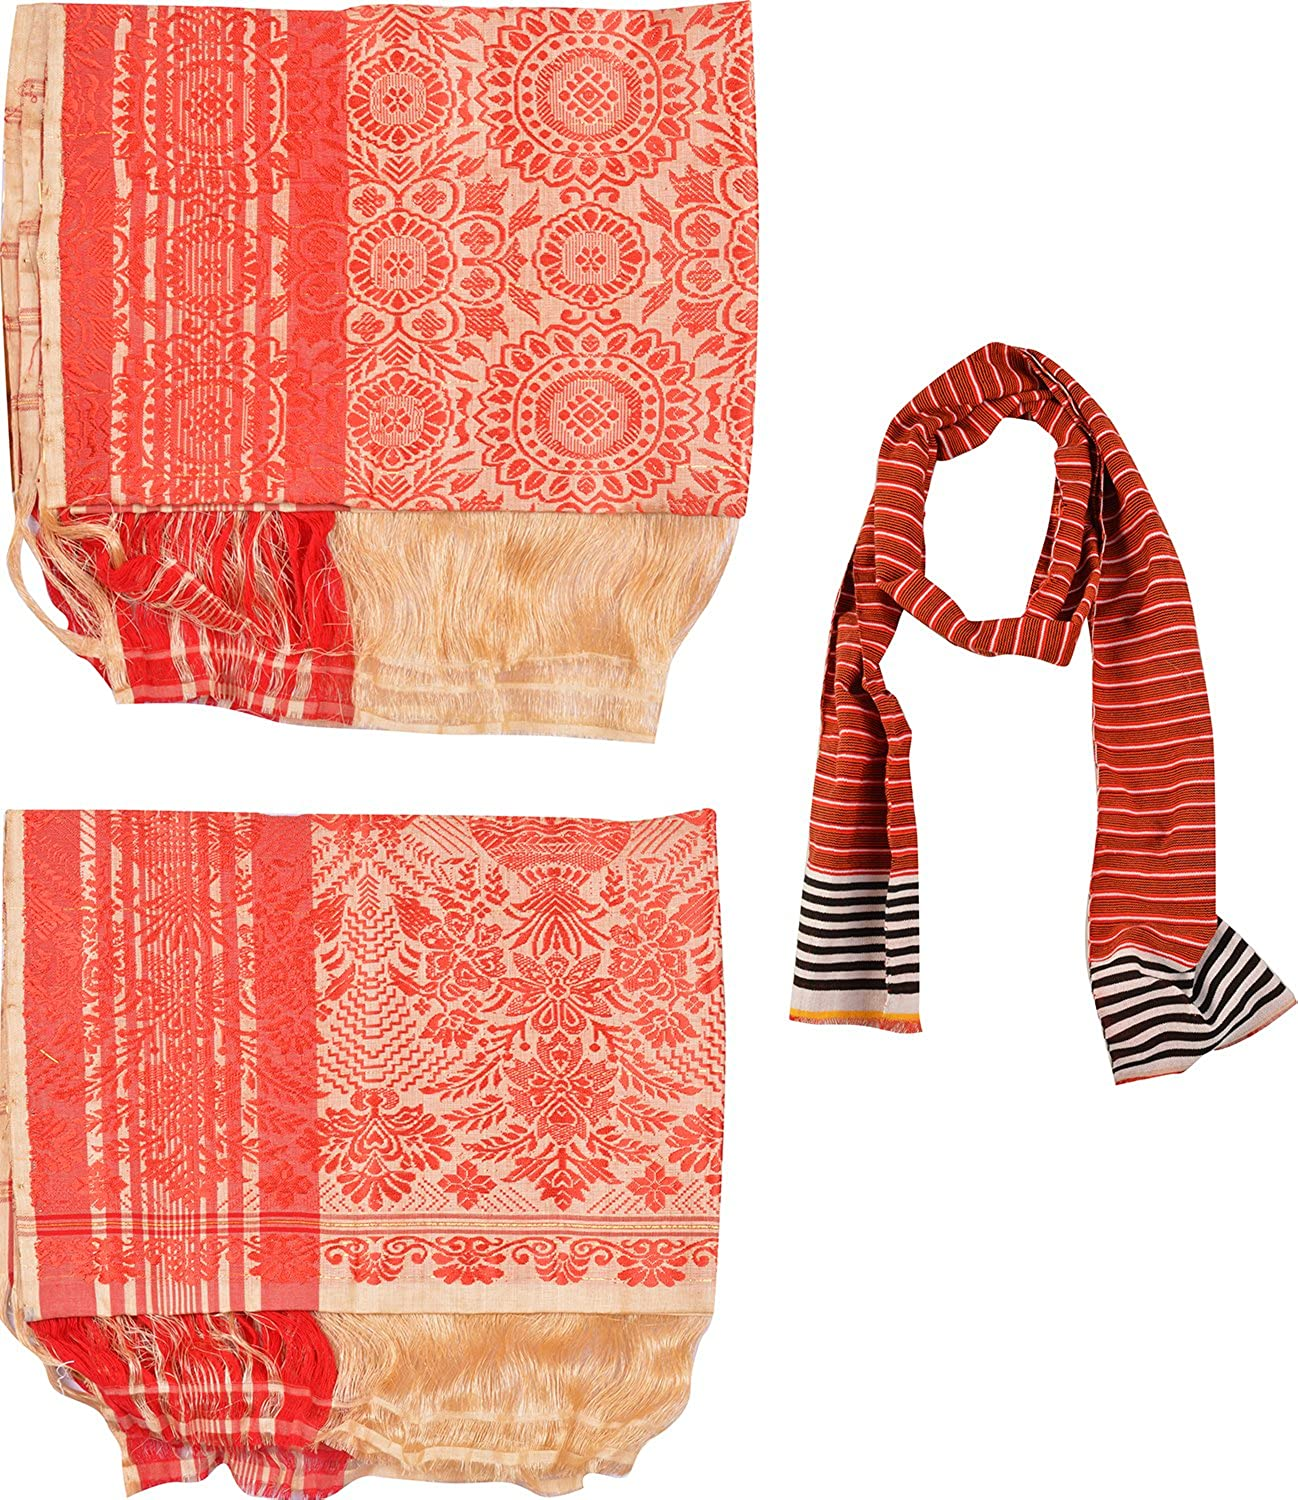 Uparam Muga Gamusa & Pohtuv, Adult Scarf Combo of 3 (Multi-Coloured)